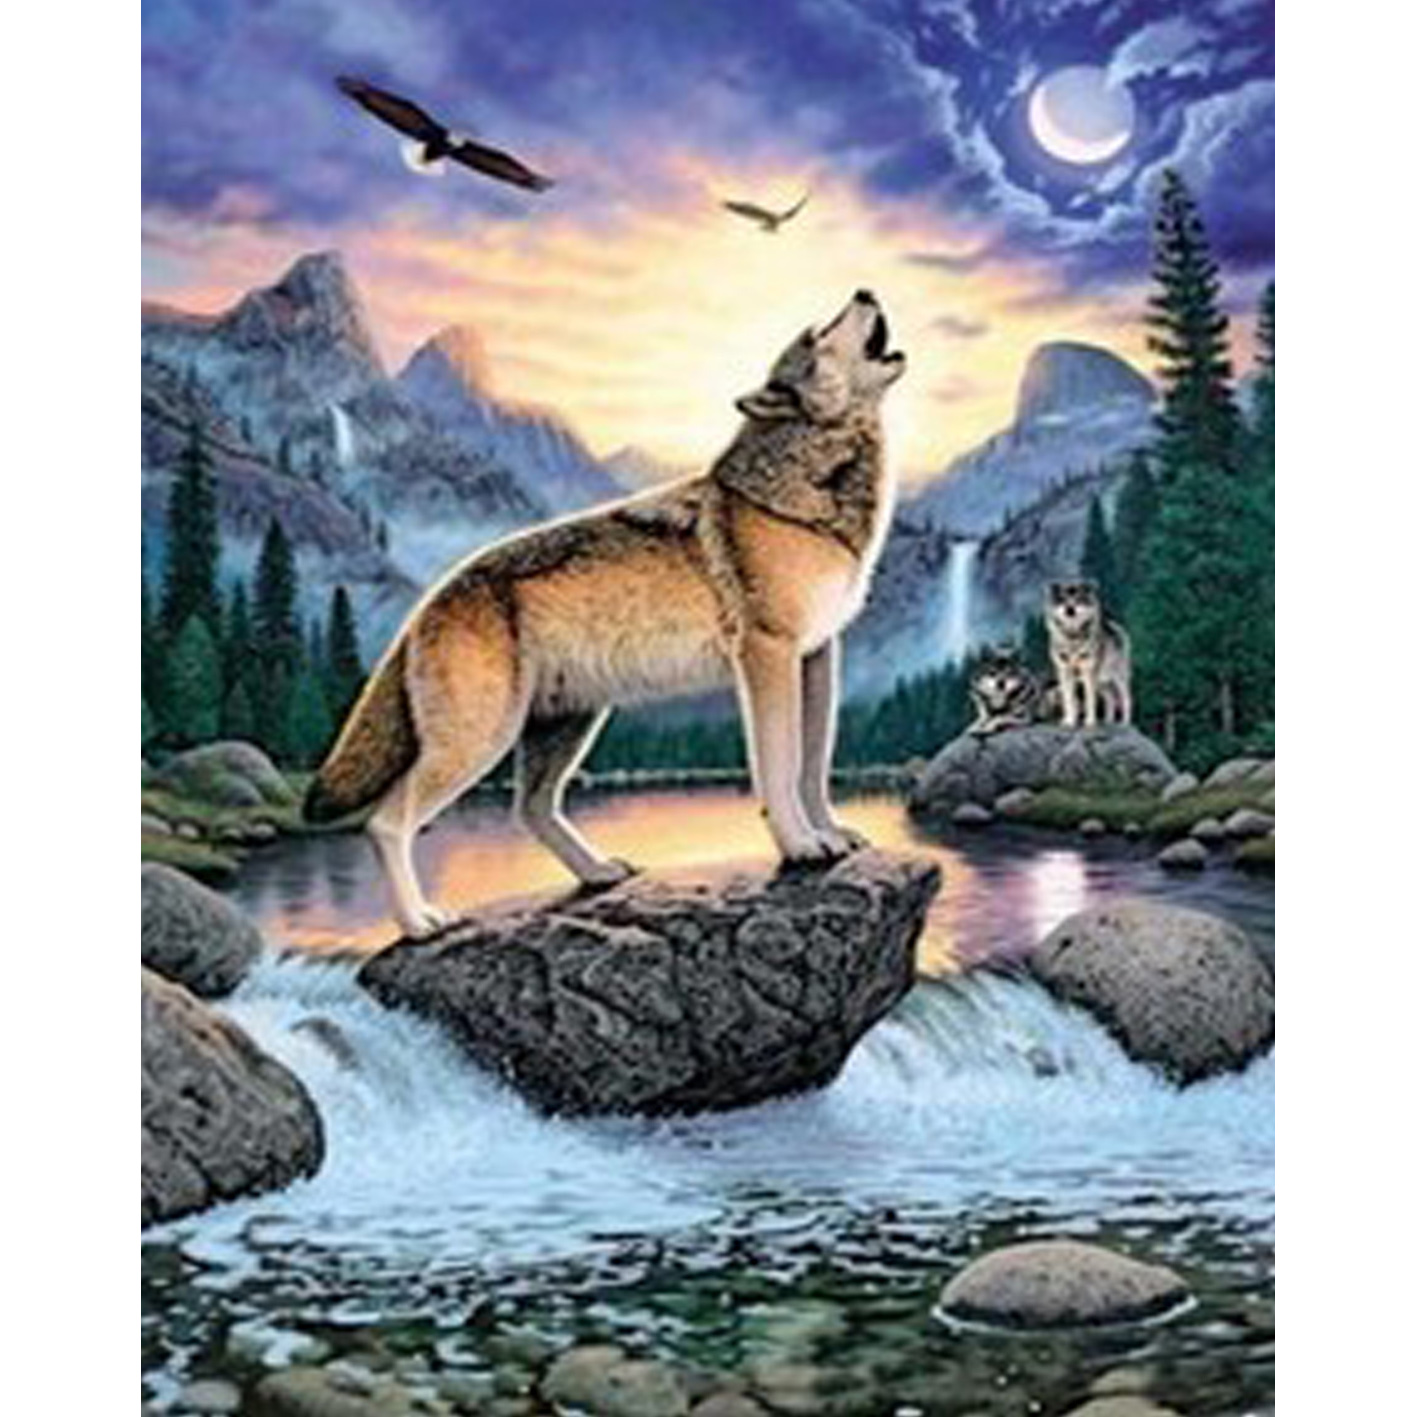 Western Style DIY Paintings 5D square Diamond Stitching Needlework Embroidery Home Decoration gift wolf 40x50cm QLD-843